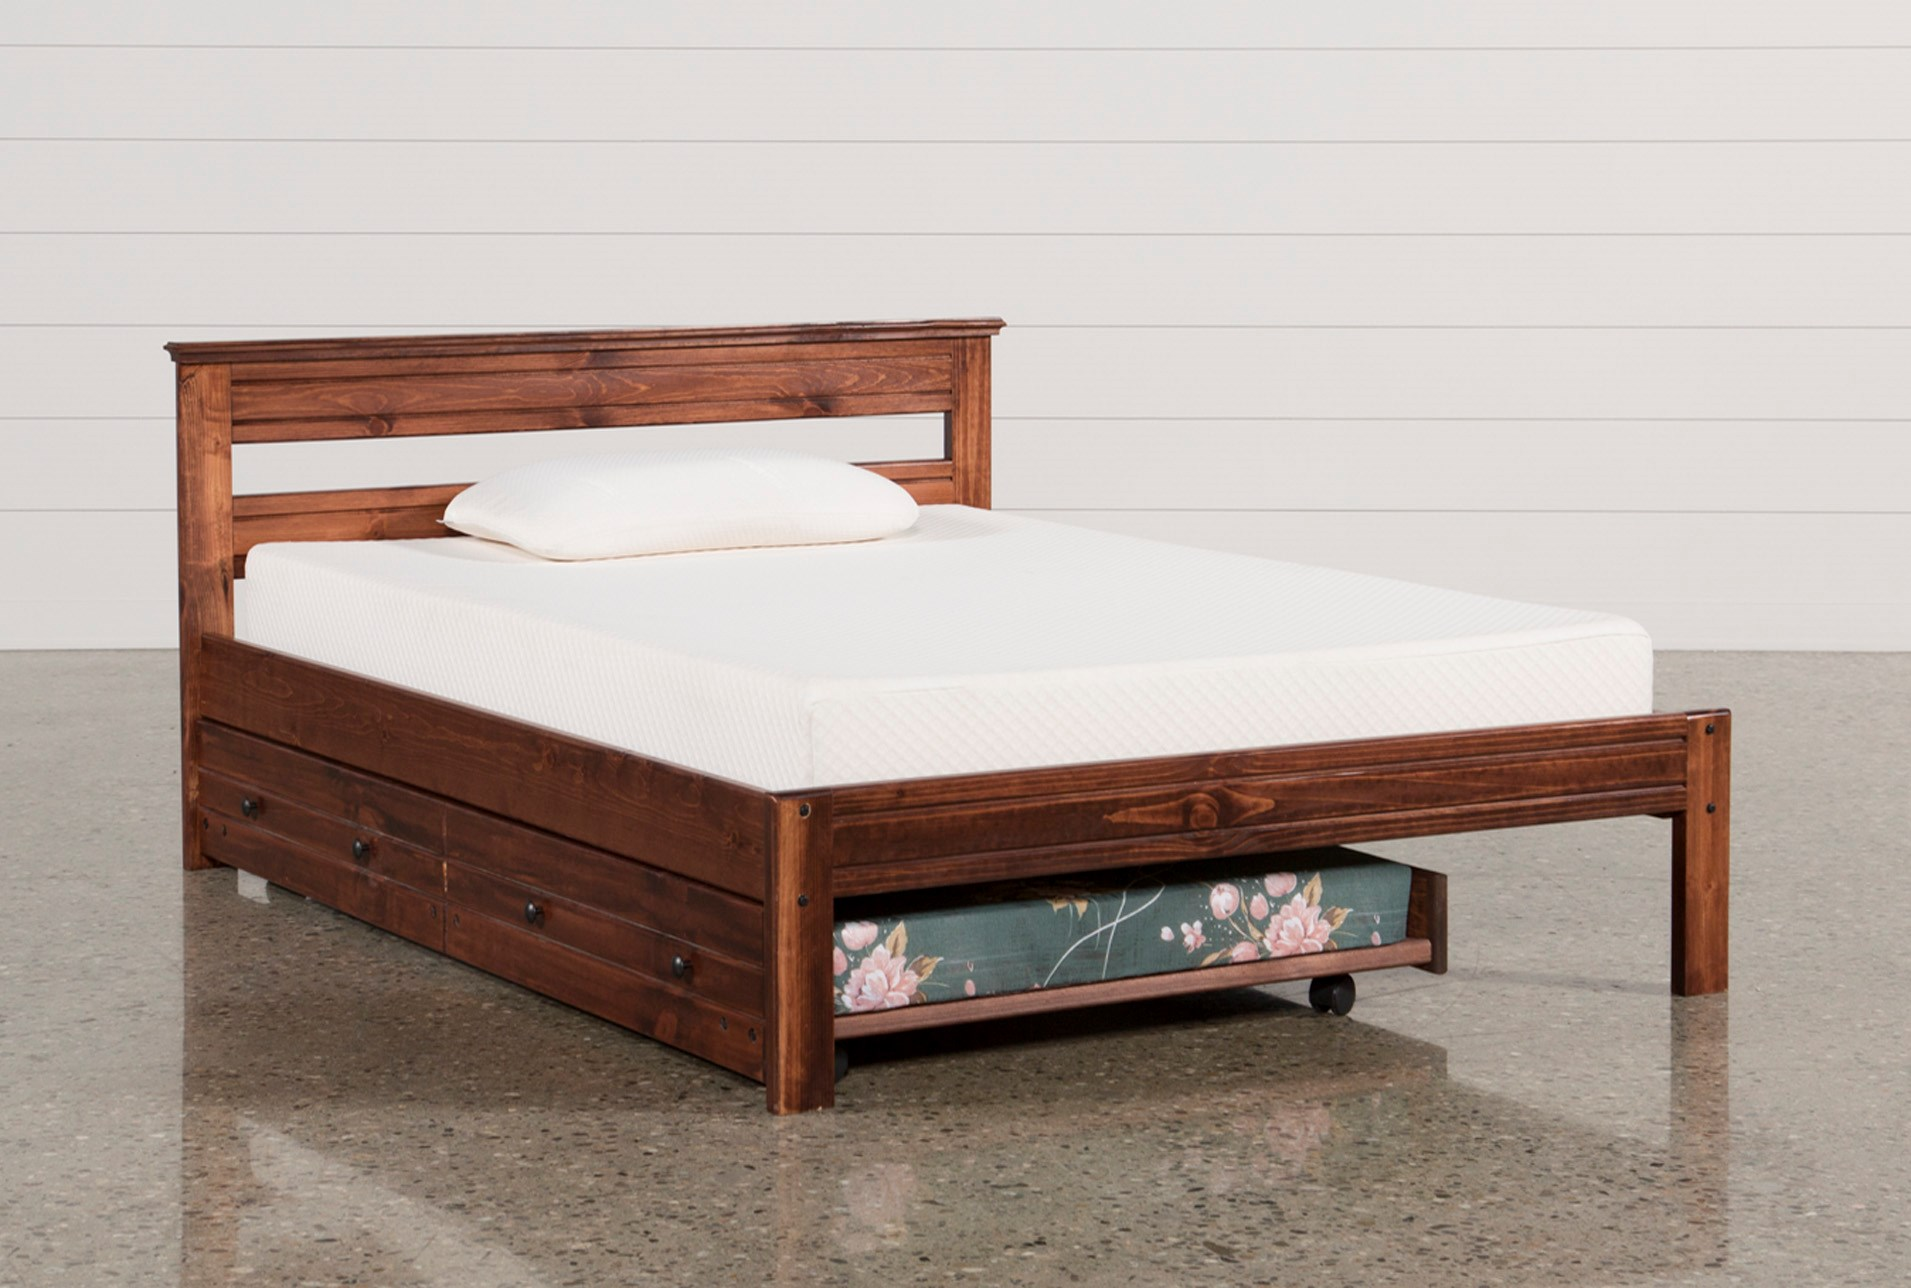 Sedona Full Platform Bed With Trundle Mattress Qty 1 Has Been Successfully Added To Your Cart